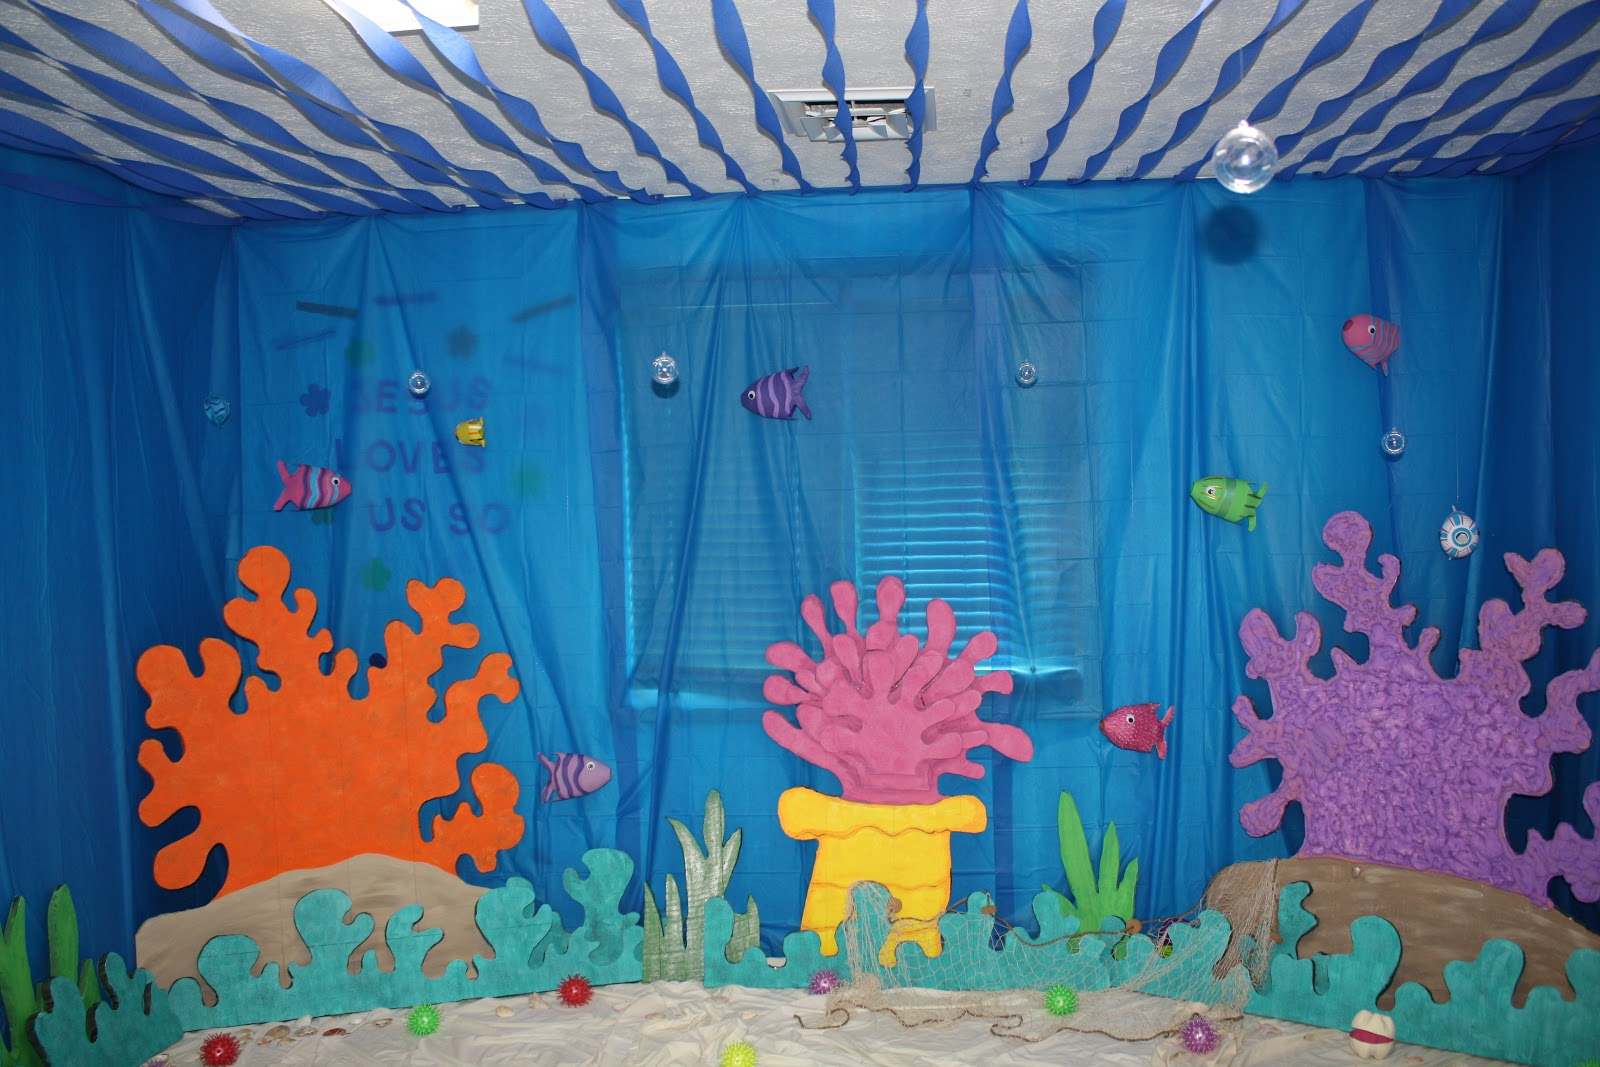 Ocean Inspired Decorating Eager Little Mind Under The Sea Decorations For Vbs